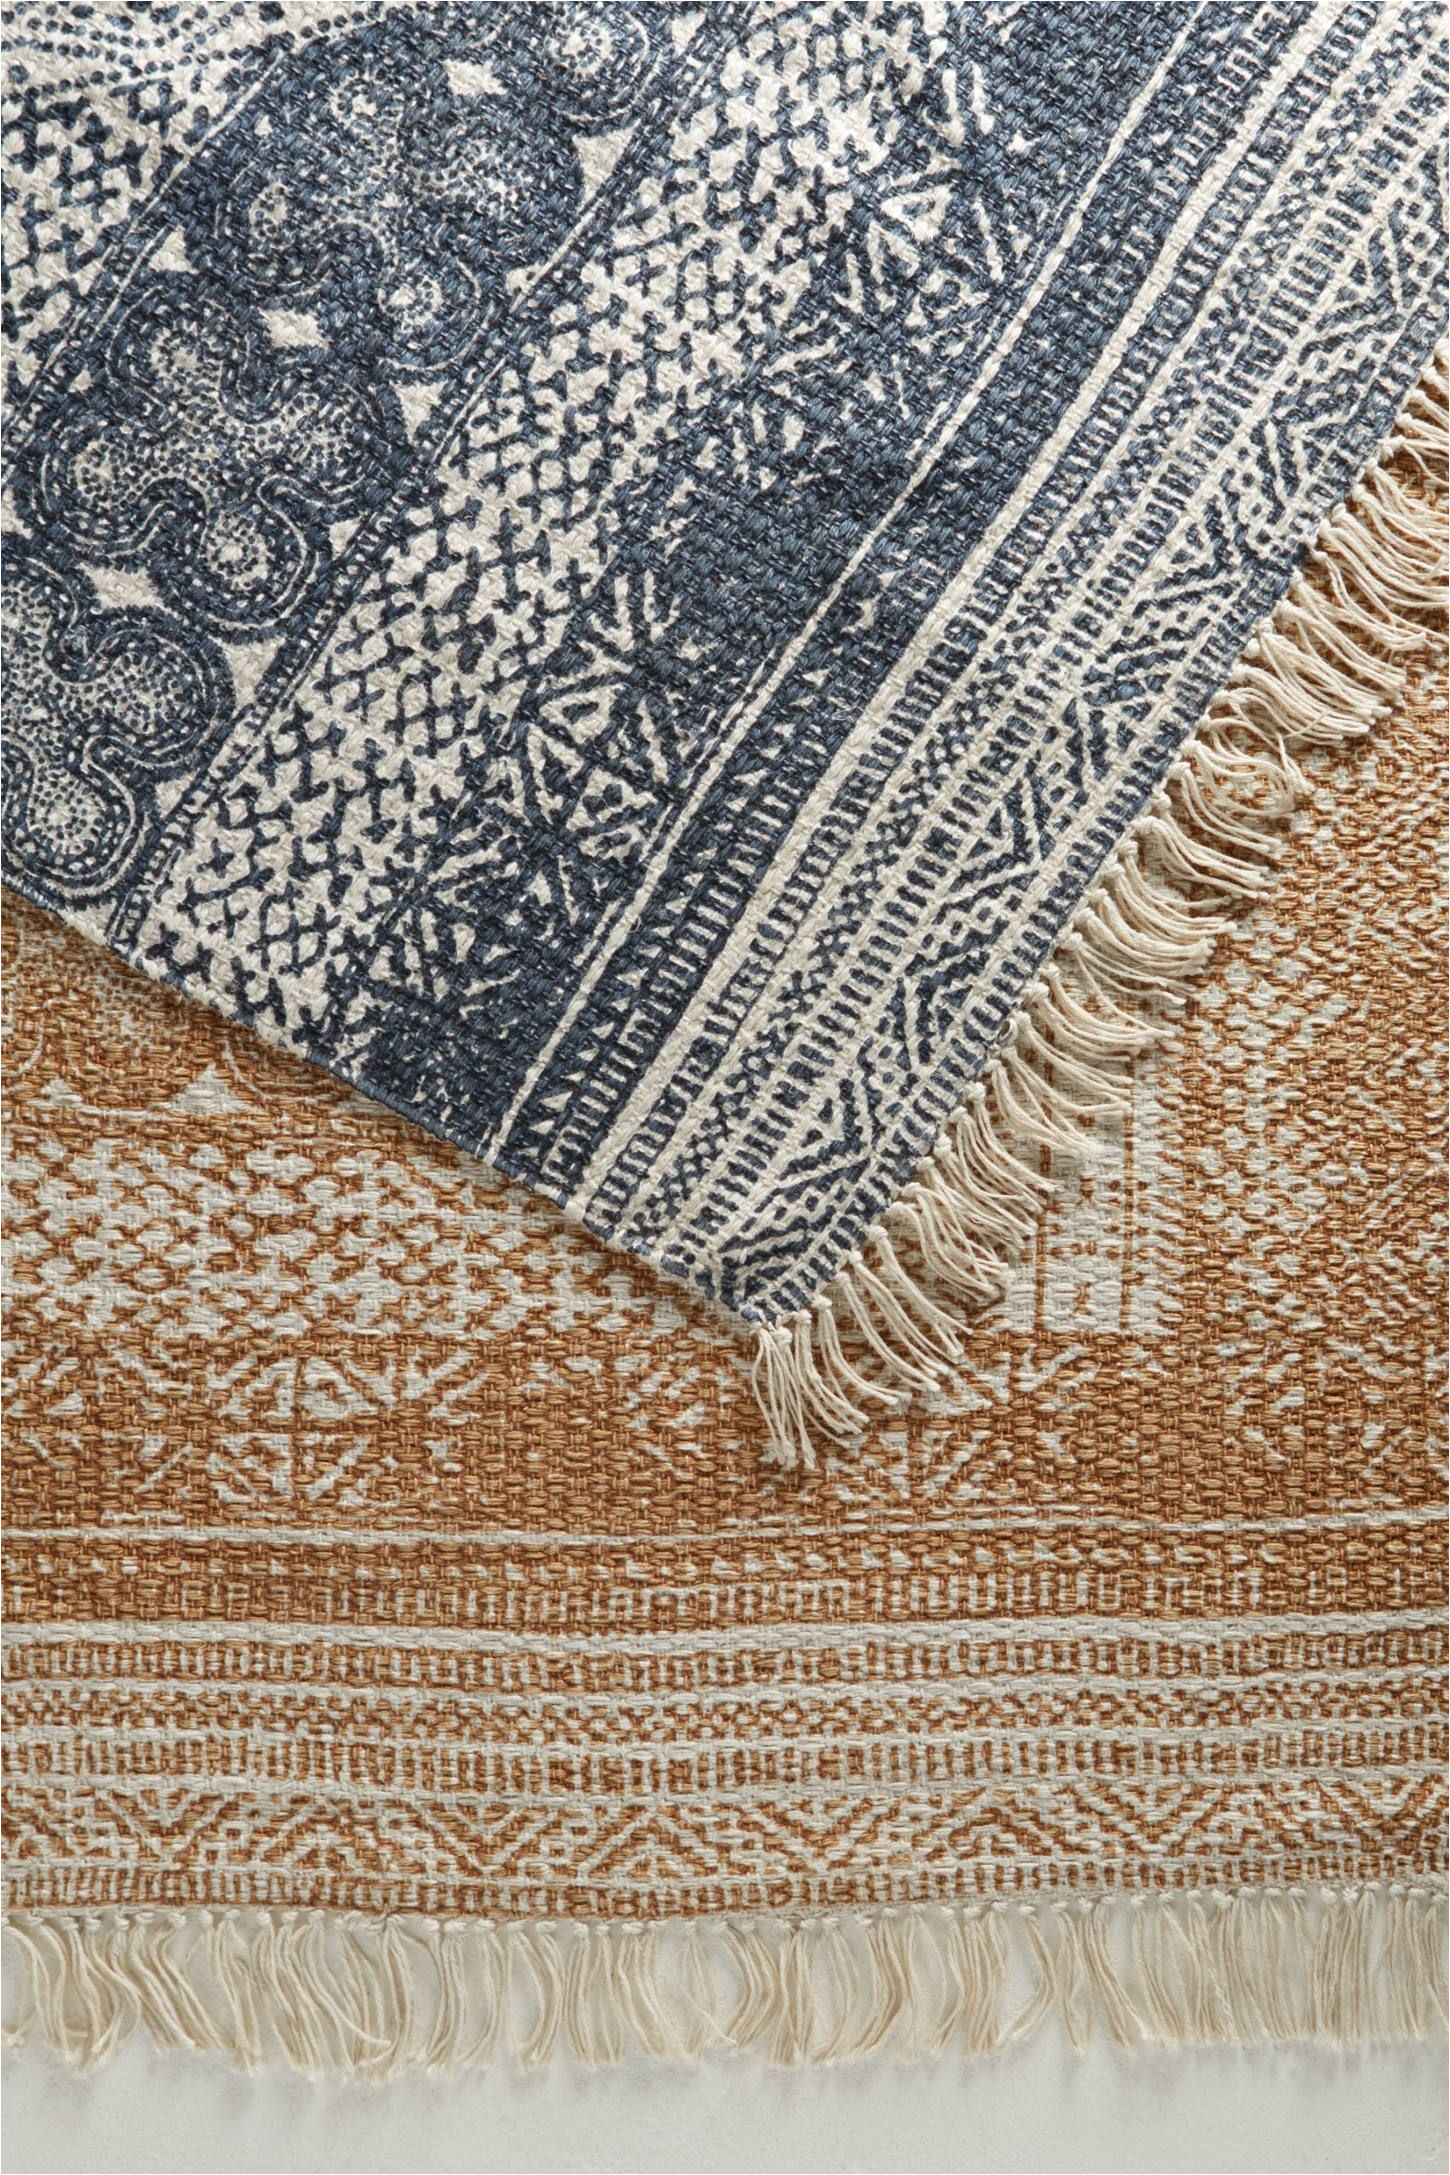 shop the jute linework rug and more anthropologie at anthropologie today read customer reviews discover product details and more